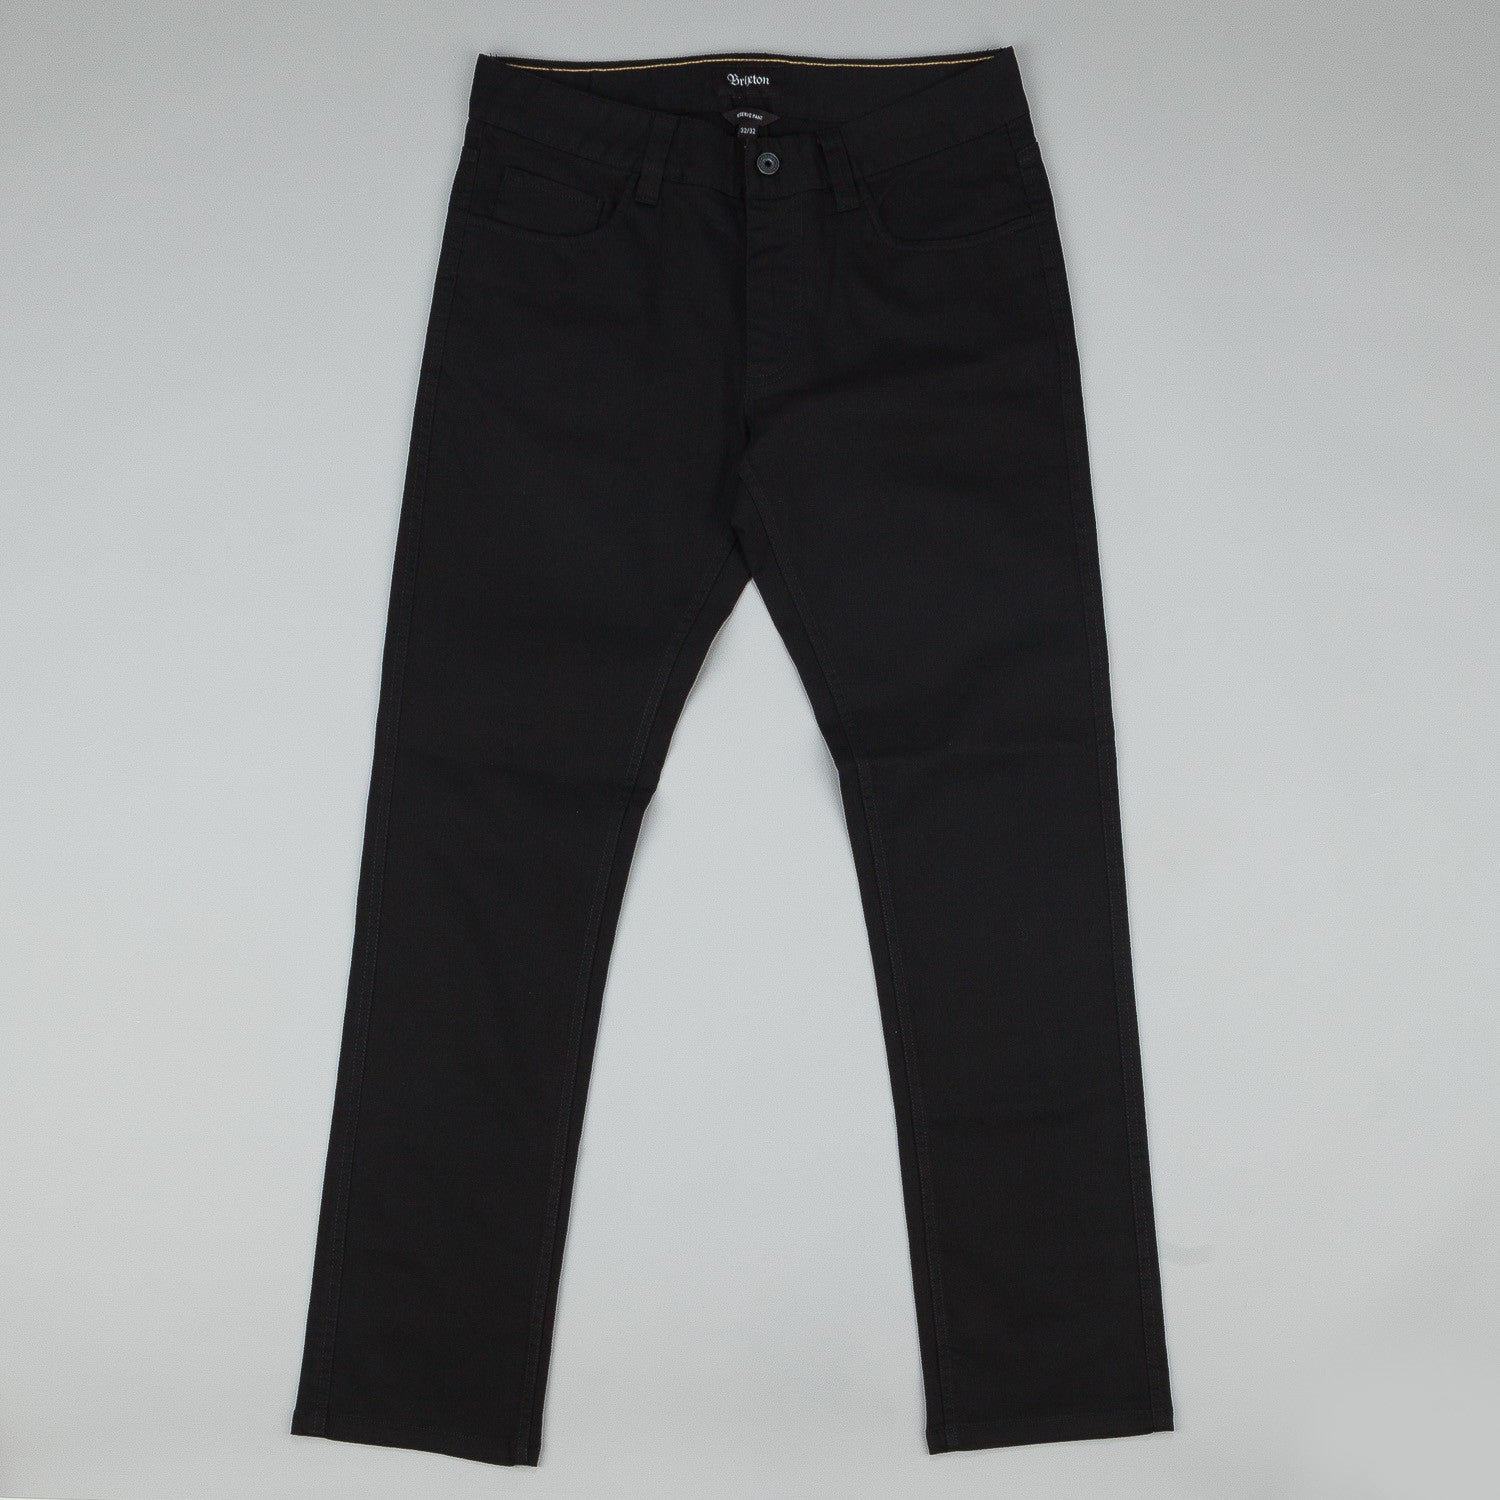 Brixton Reserve 5 Pocket Trousers